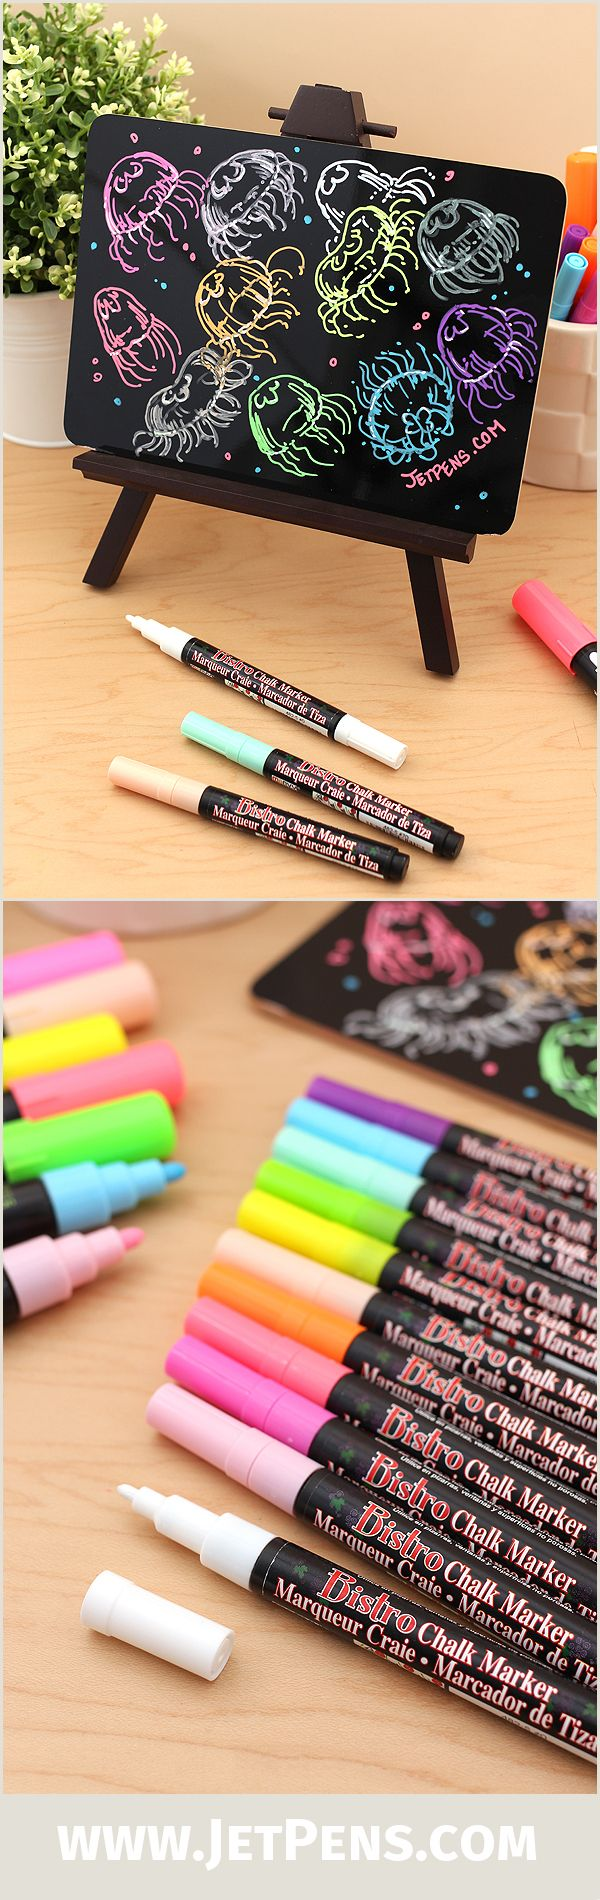 Make your chalkboards and glass fronts pop with vibrant Marvy Uchida Bistro Chalk Markers' opaque, water-based pigment ink.